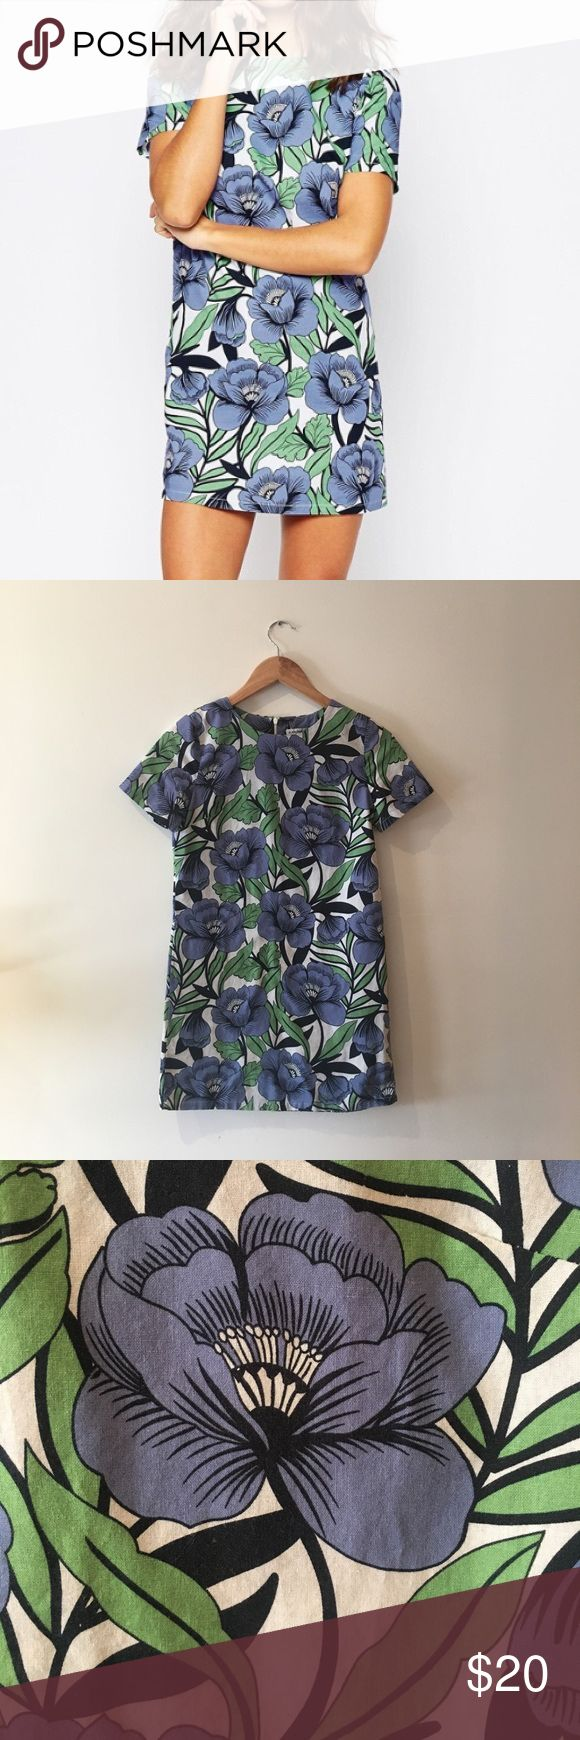 ASOS Glamorous Petite printed shift dress Size 4 Petite ASOS floral shift dress. Blue, green and white floral pattern. Only worn a few times, in great condition. ASOS Petite Dresses Mini